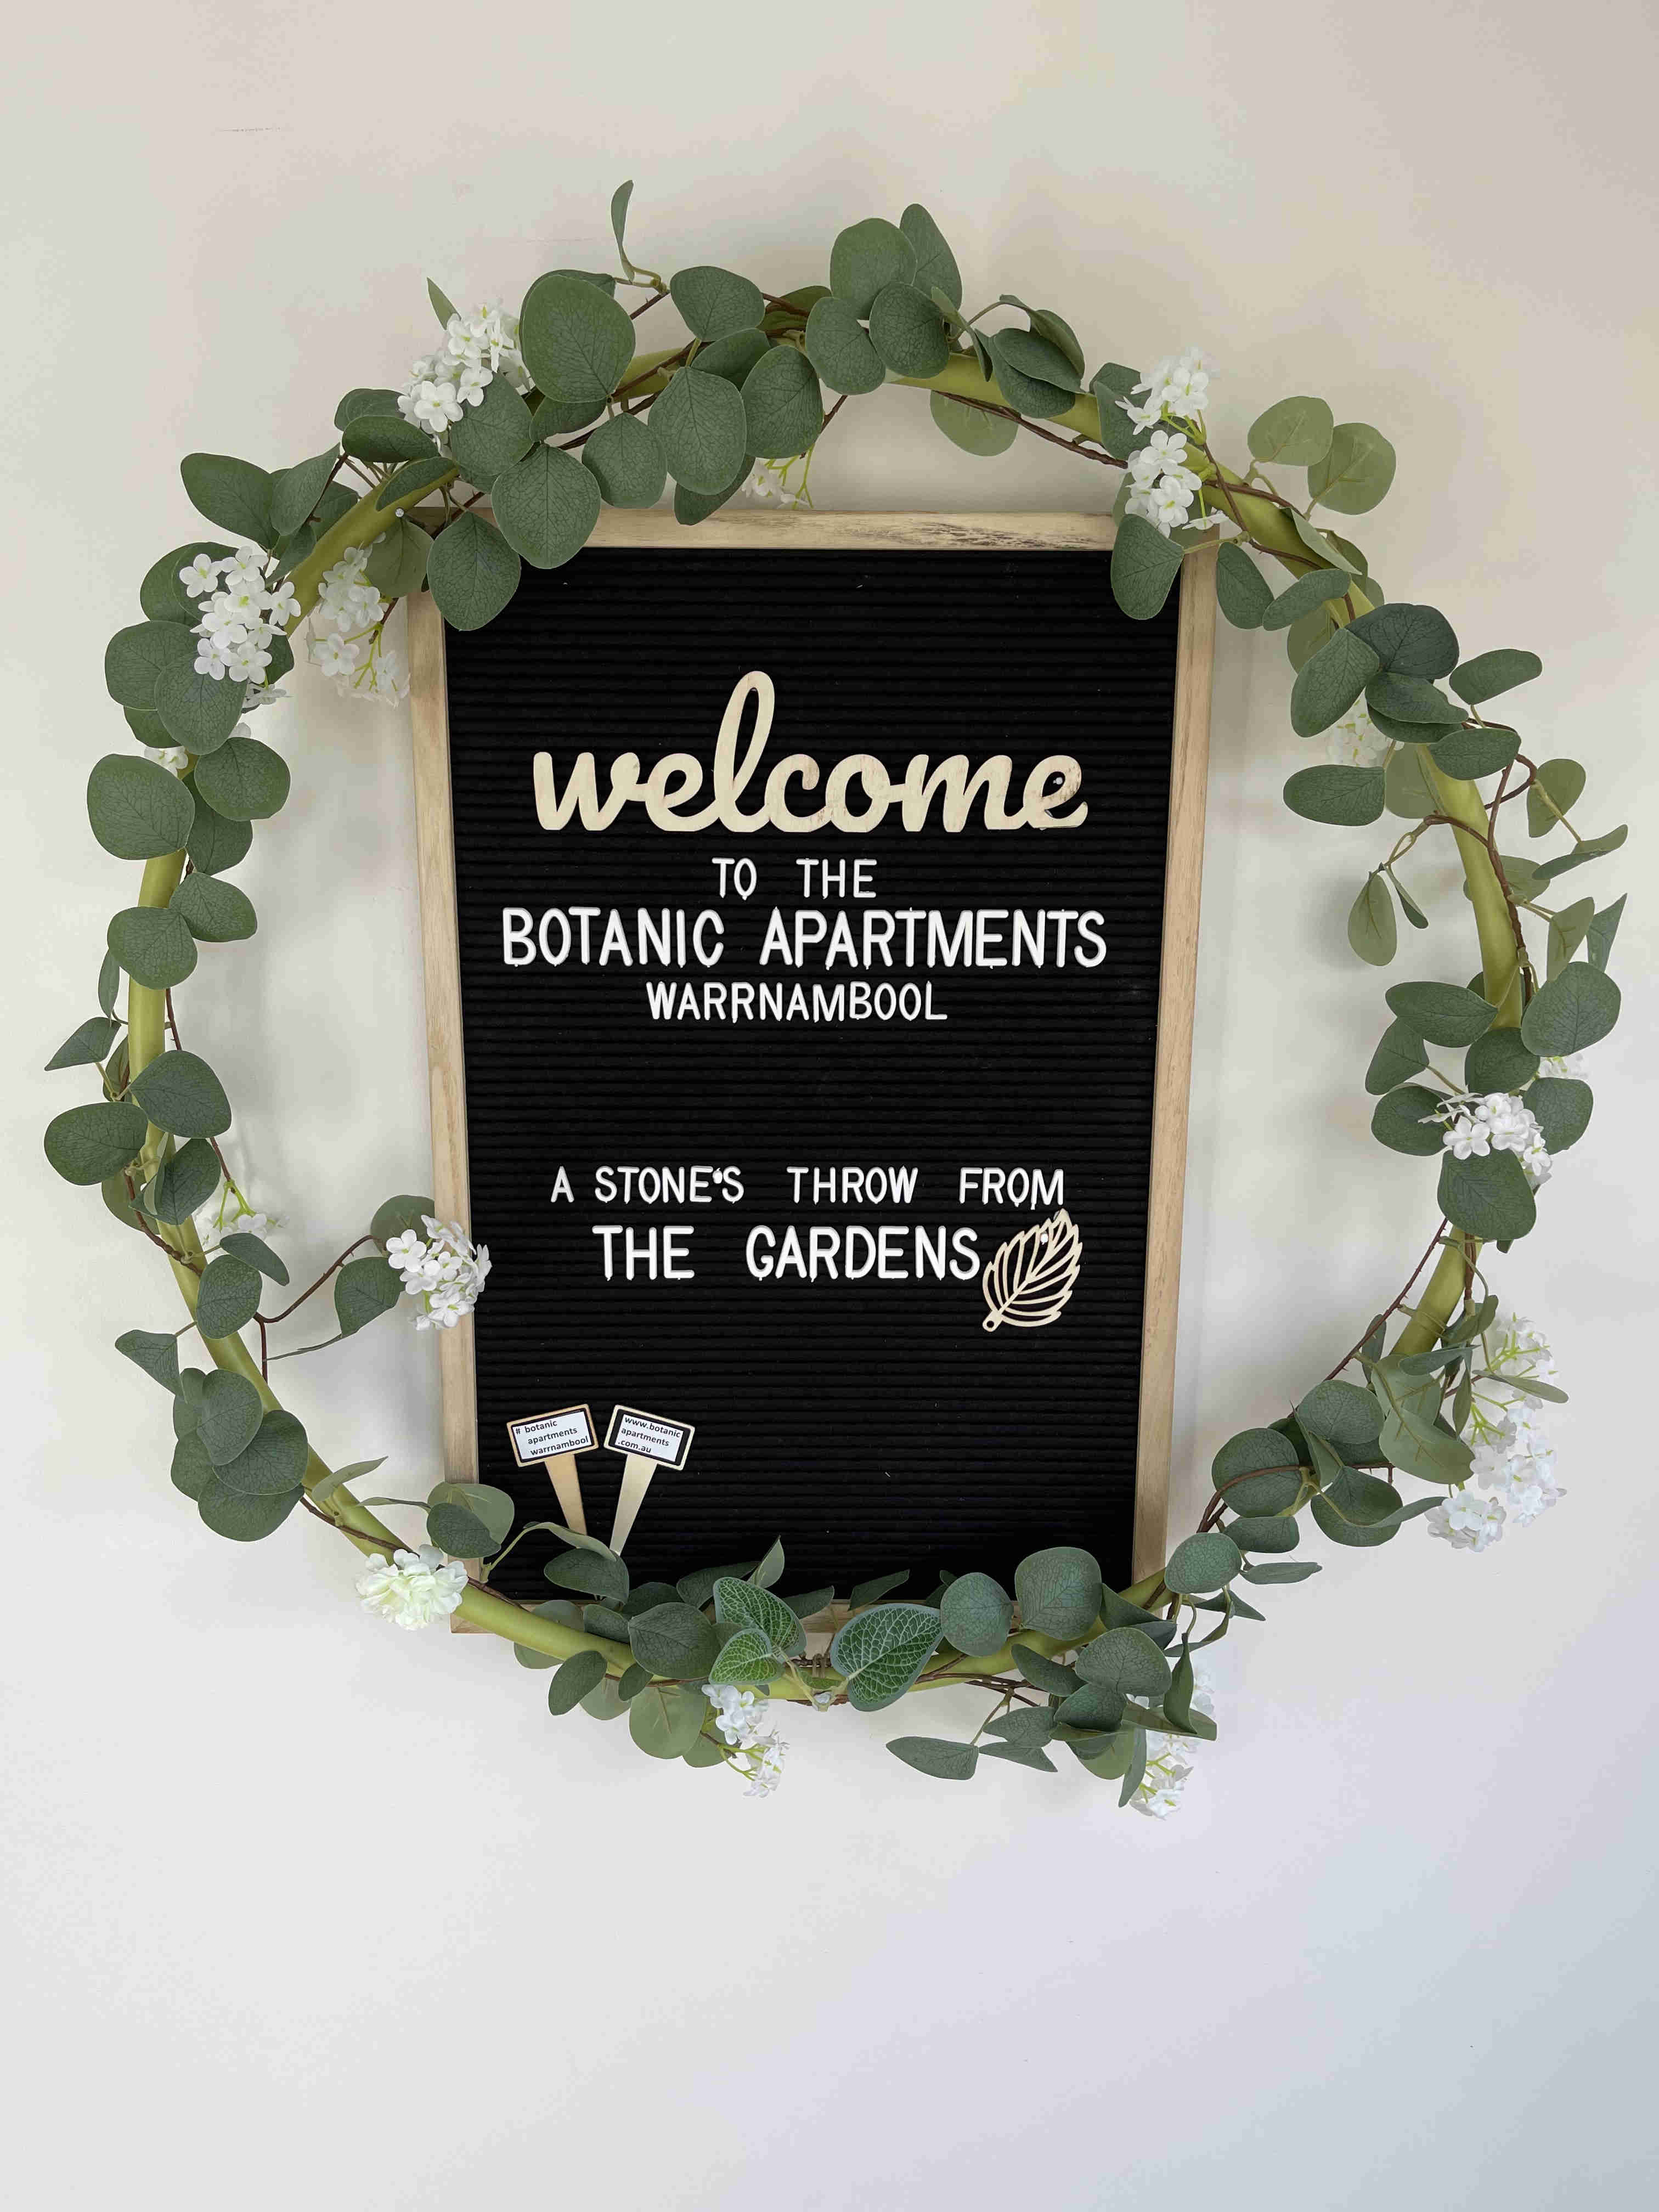 Welcome sign in reception entrance at Botanic Apartments, Warrnambool